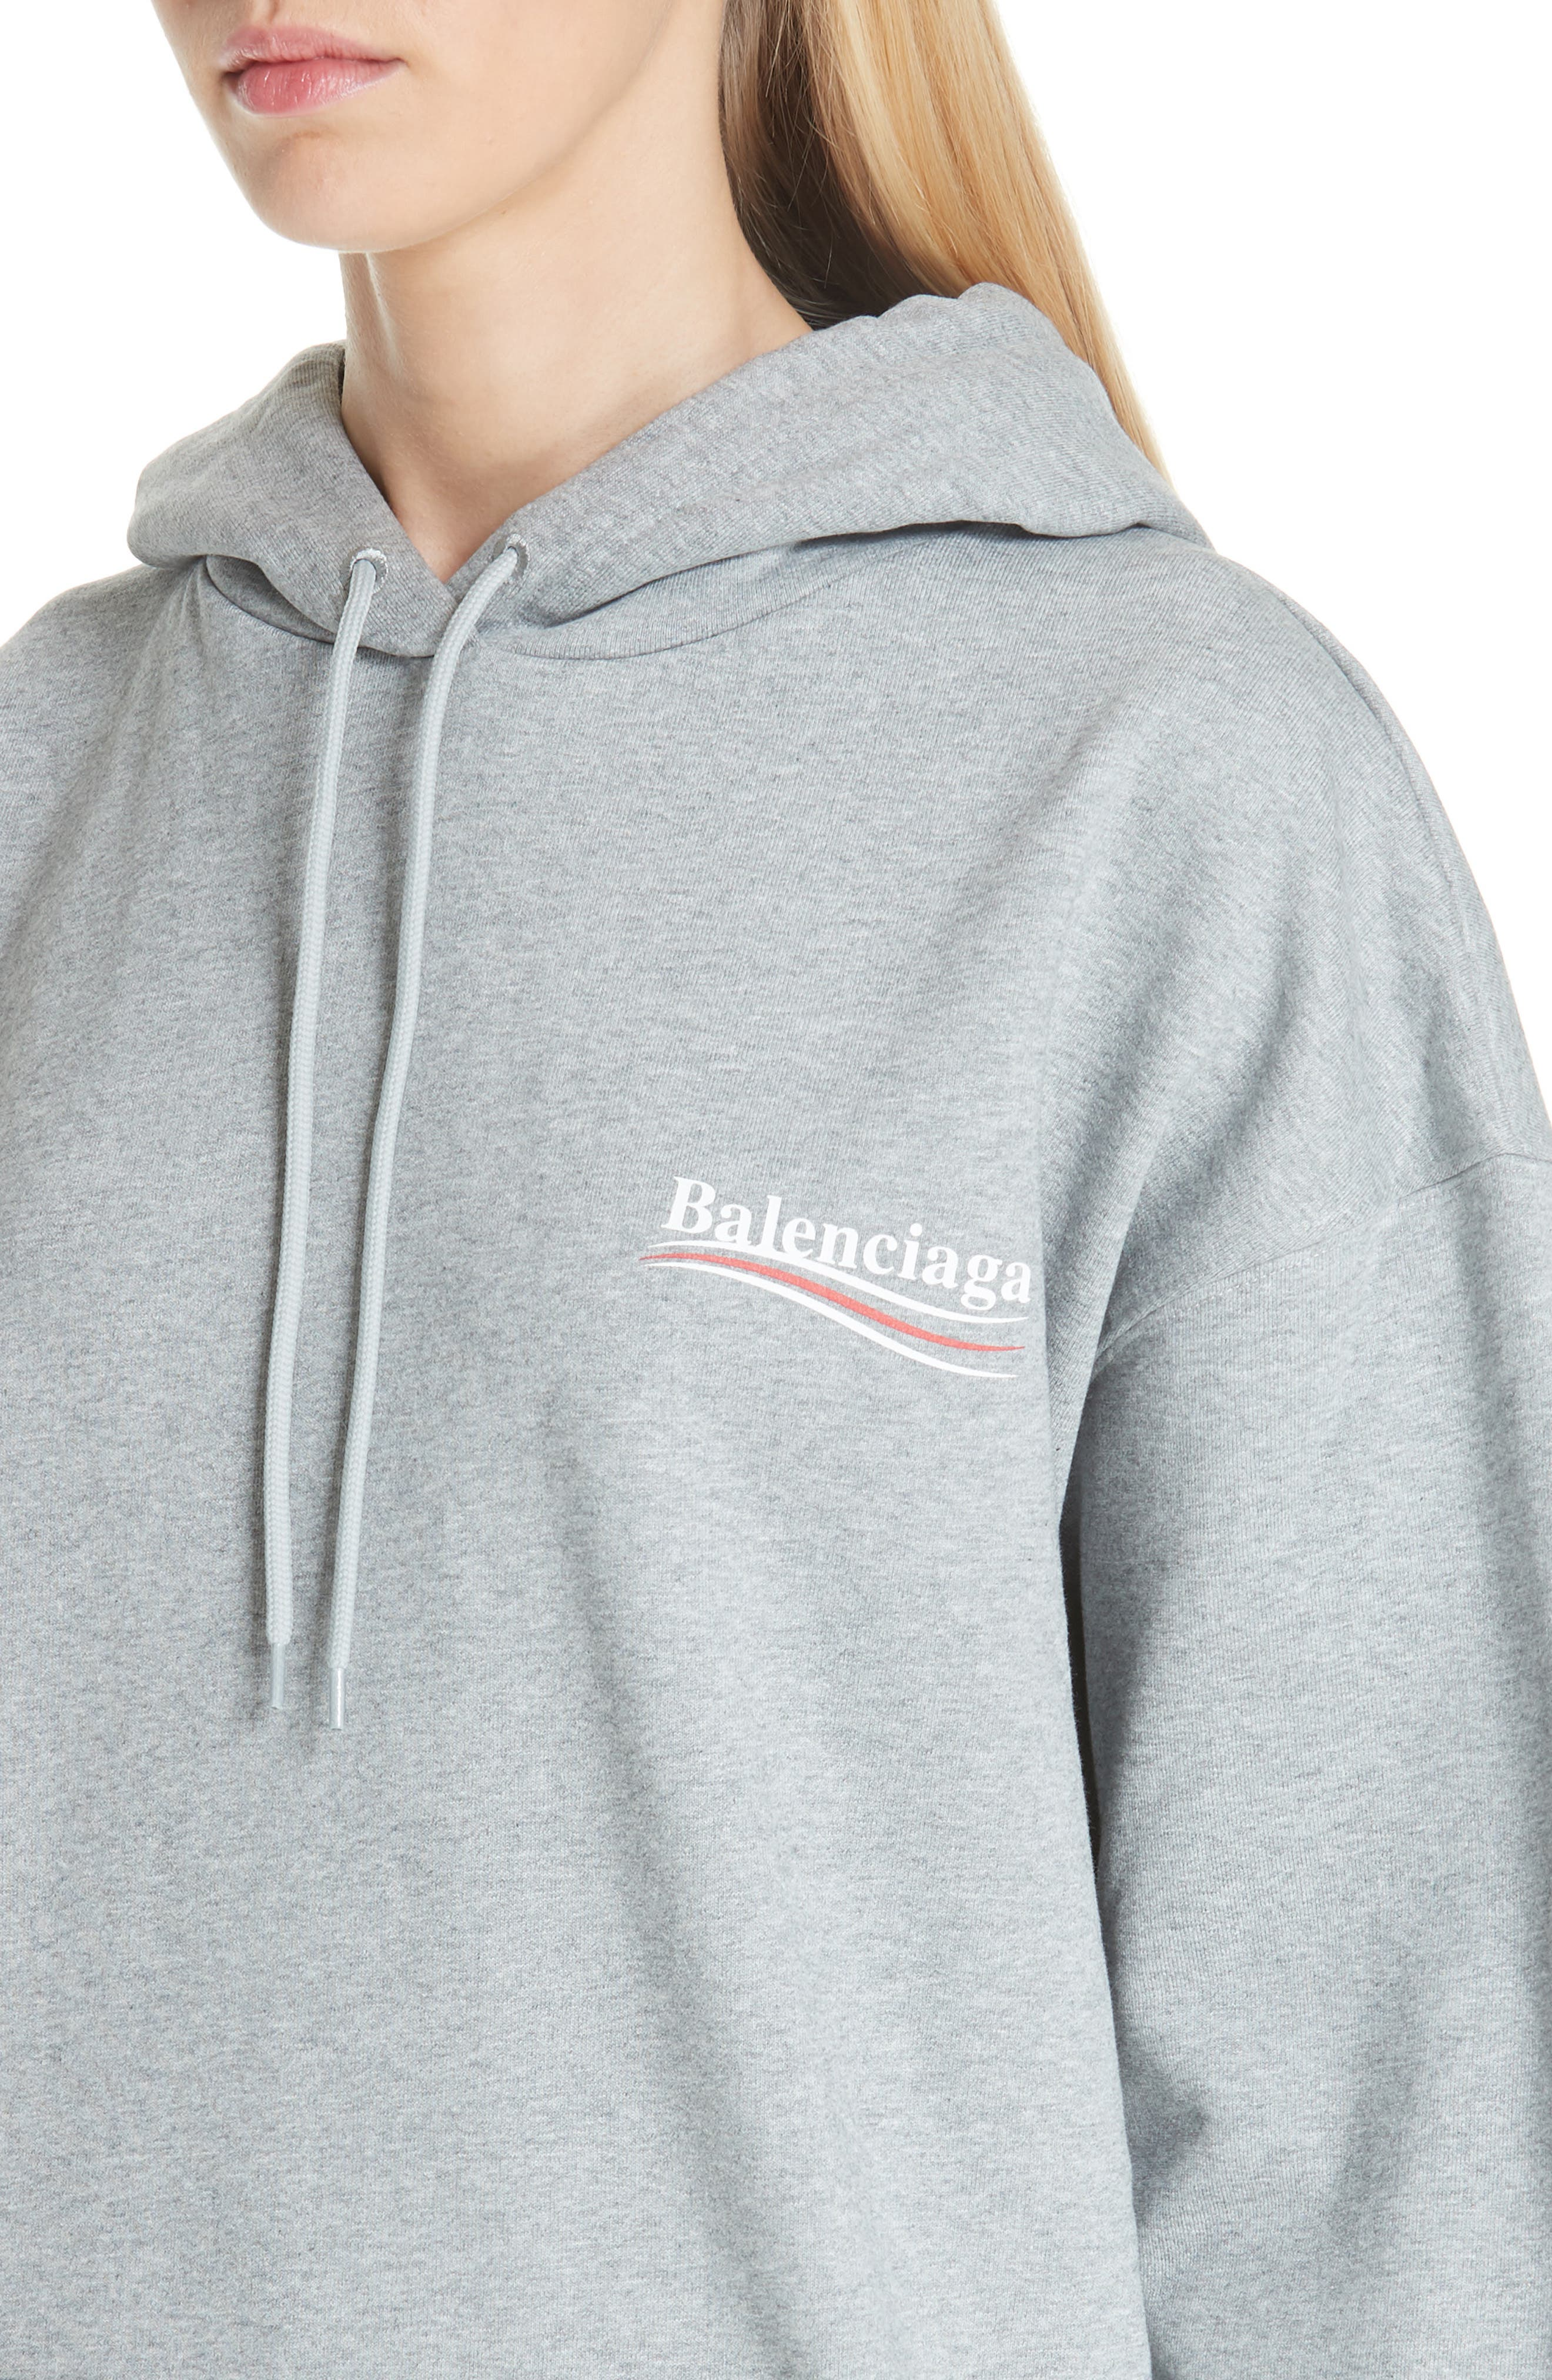 Campaign Logo Hoodie,                             Alternate thumbnail 4, color,                             020